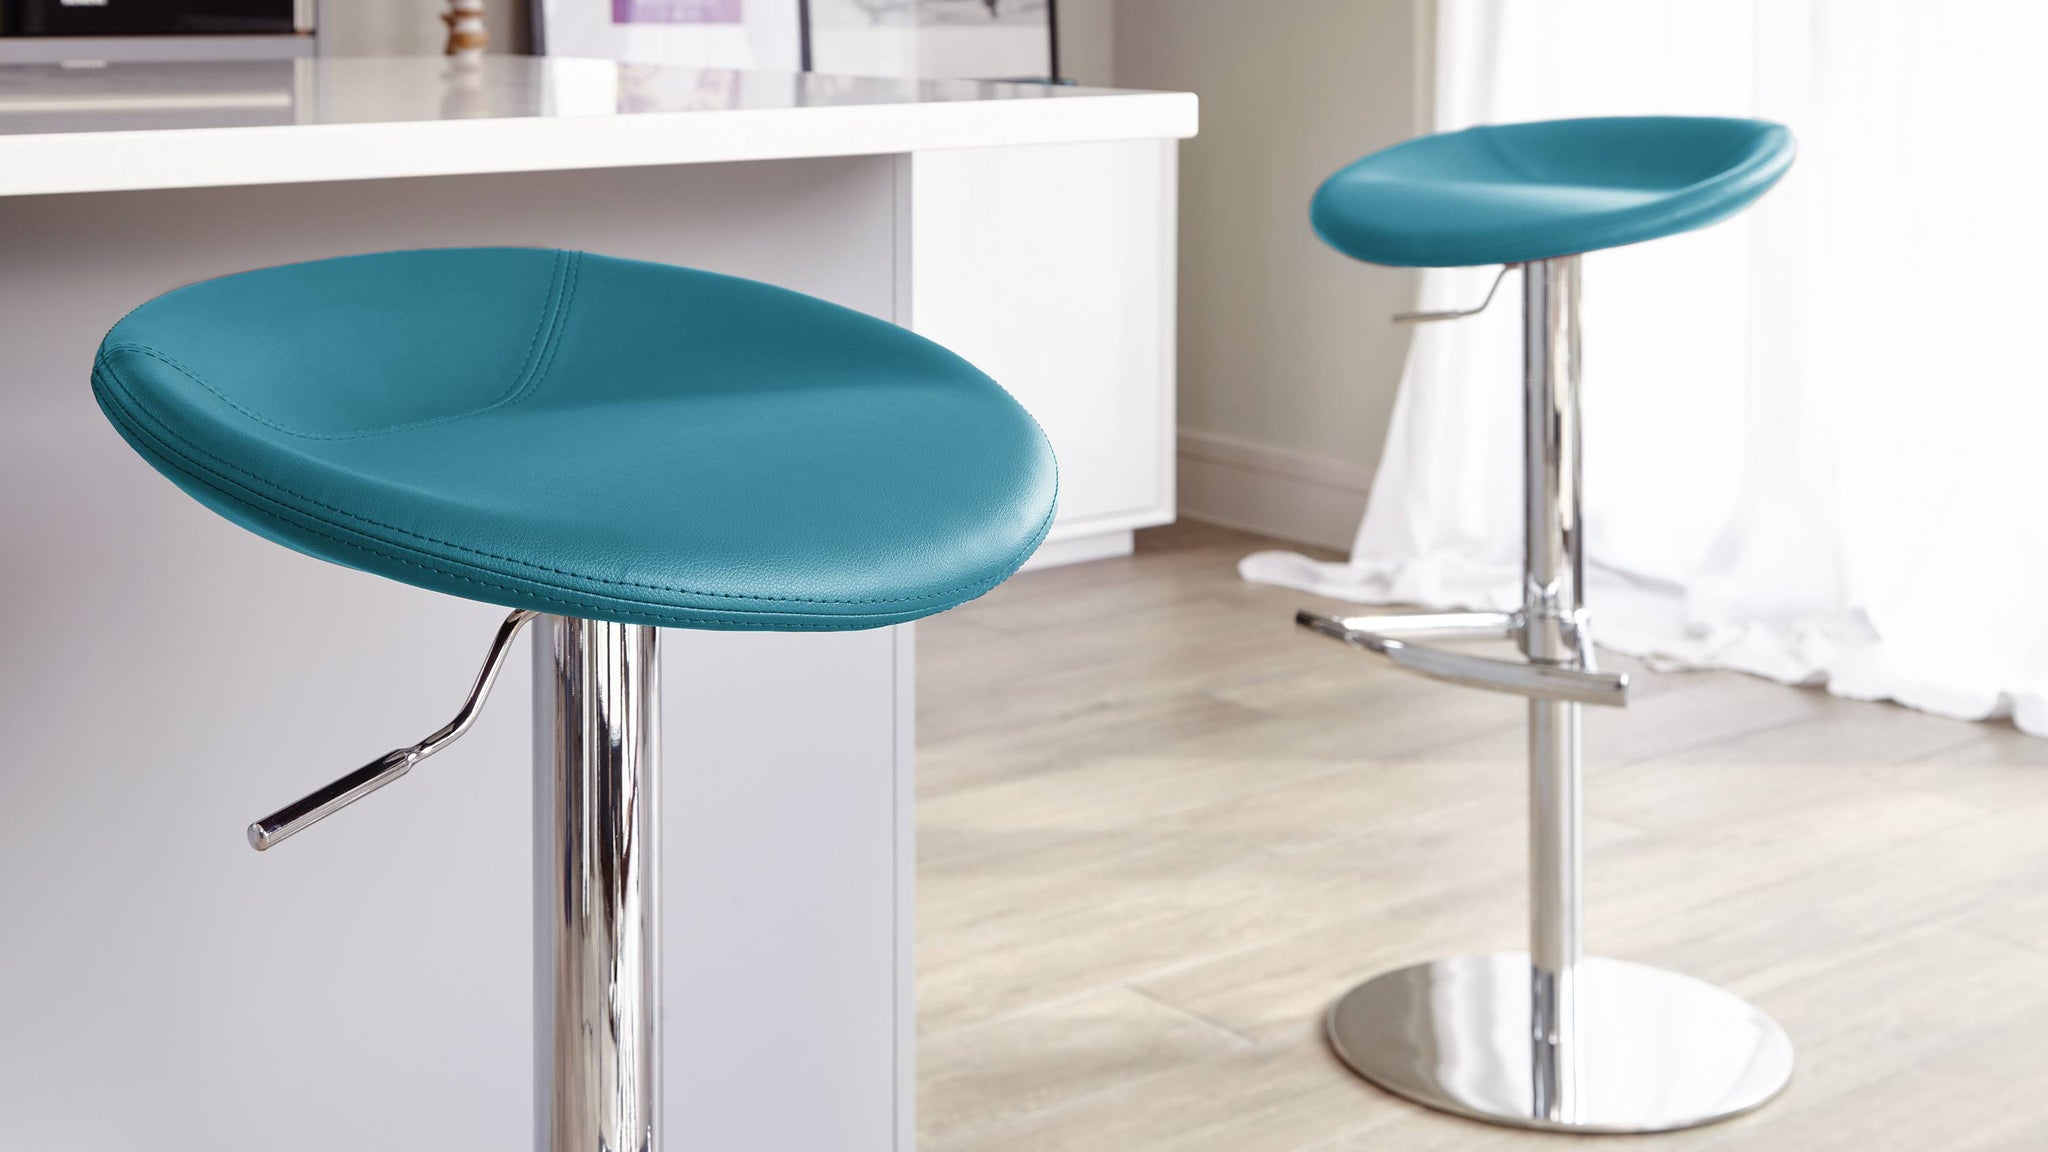 Buy anzio gaslift colourful bar stool